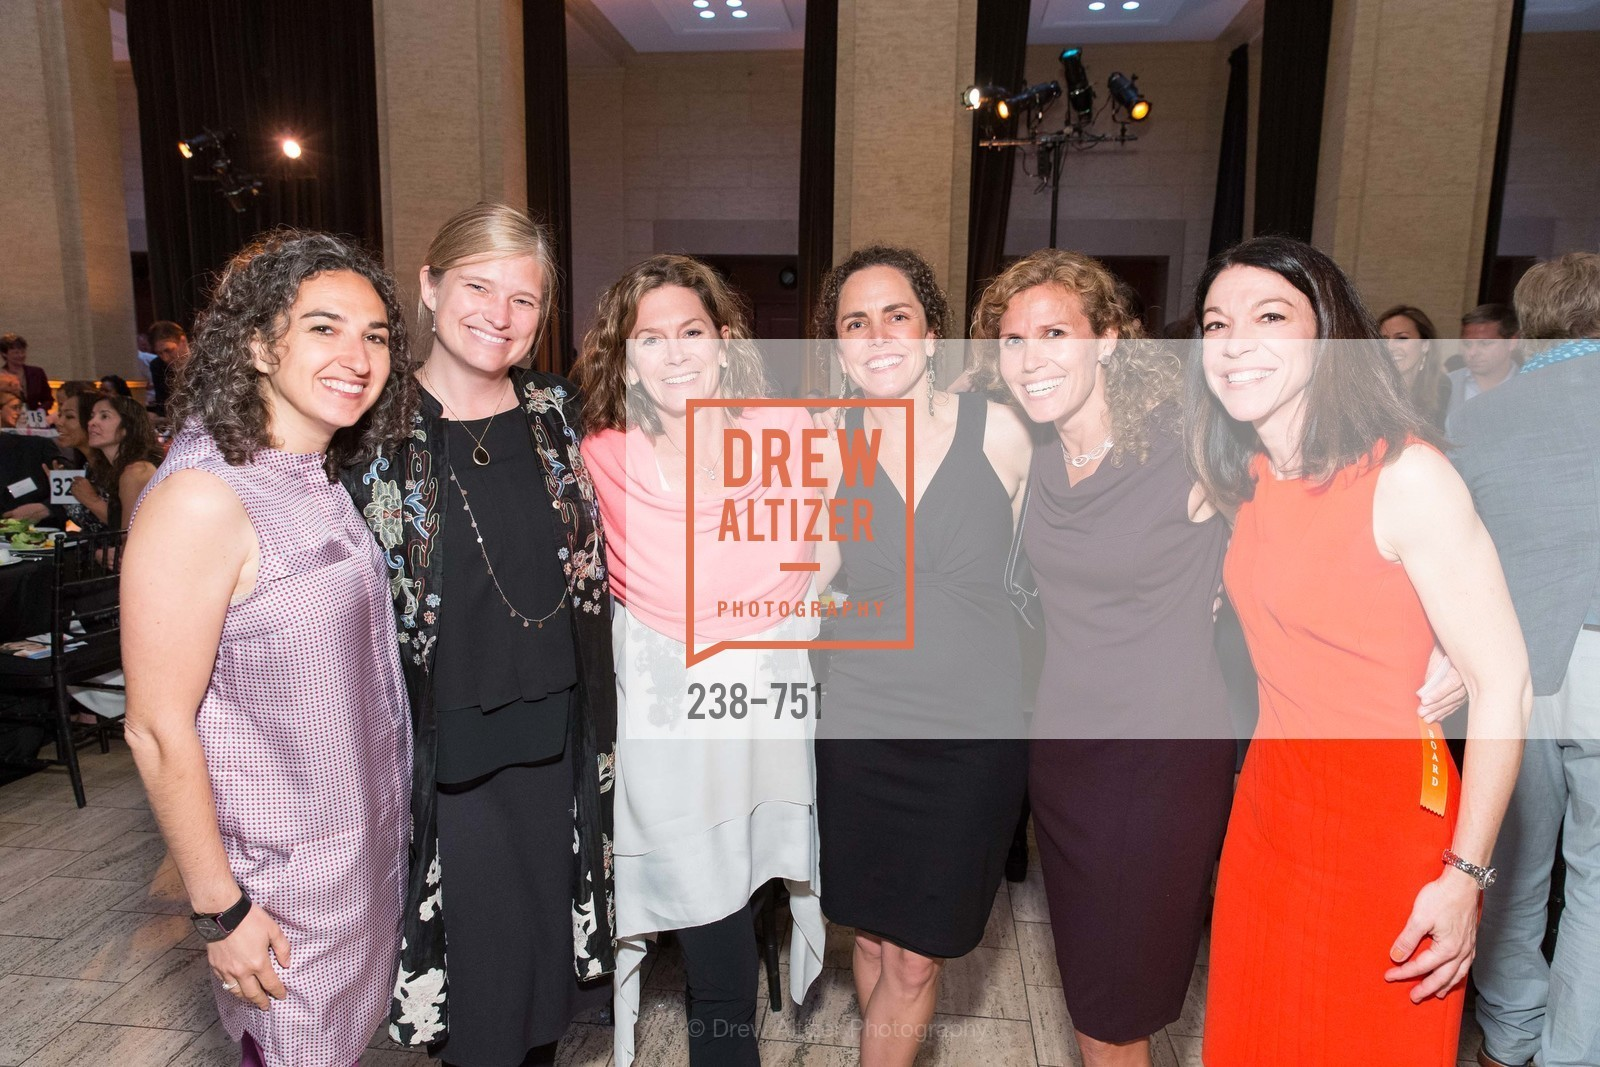 Serena Warner, Courtney Coolidge, Heather Walker, Christine Nesbit, Lynele Cameron, Lisa DeCarlo, CENTER FOR ENVIRONMENTAL HEALTH (CEH) 2015 Gala, US, May 28th, 2015,Drew Altizer, Drew Altizer Photography, full-service agency, private events, San Francisco photographer, photographer california